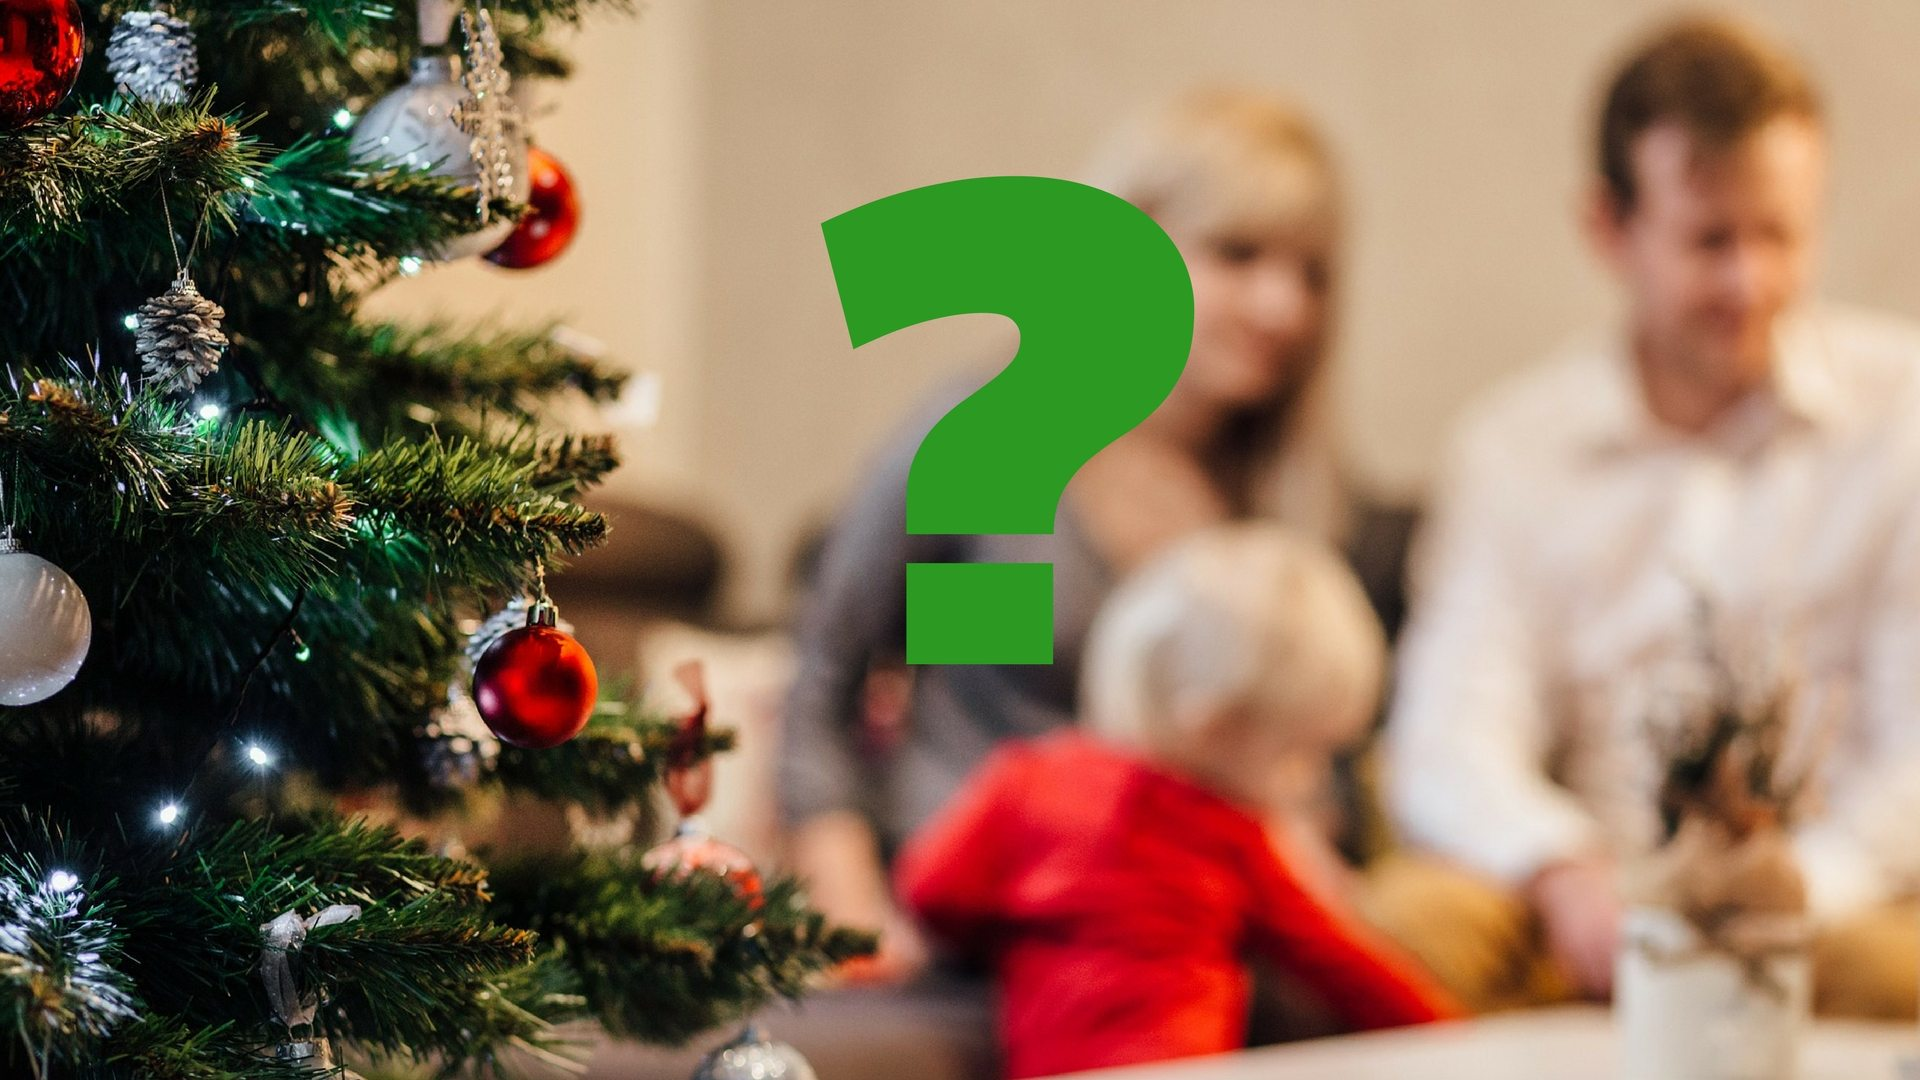 Questioning Christmas - Pixabay - Canva